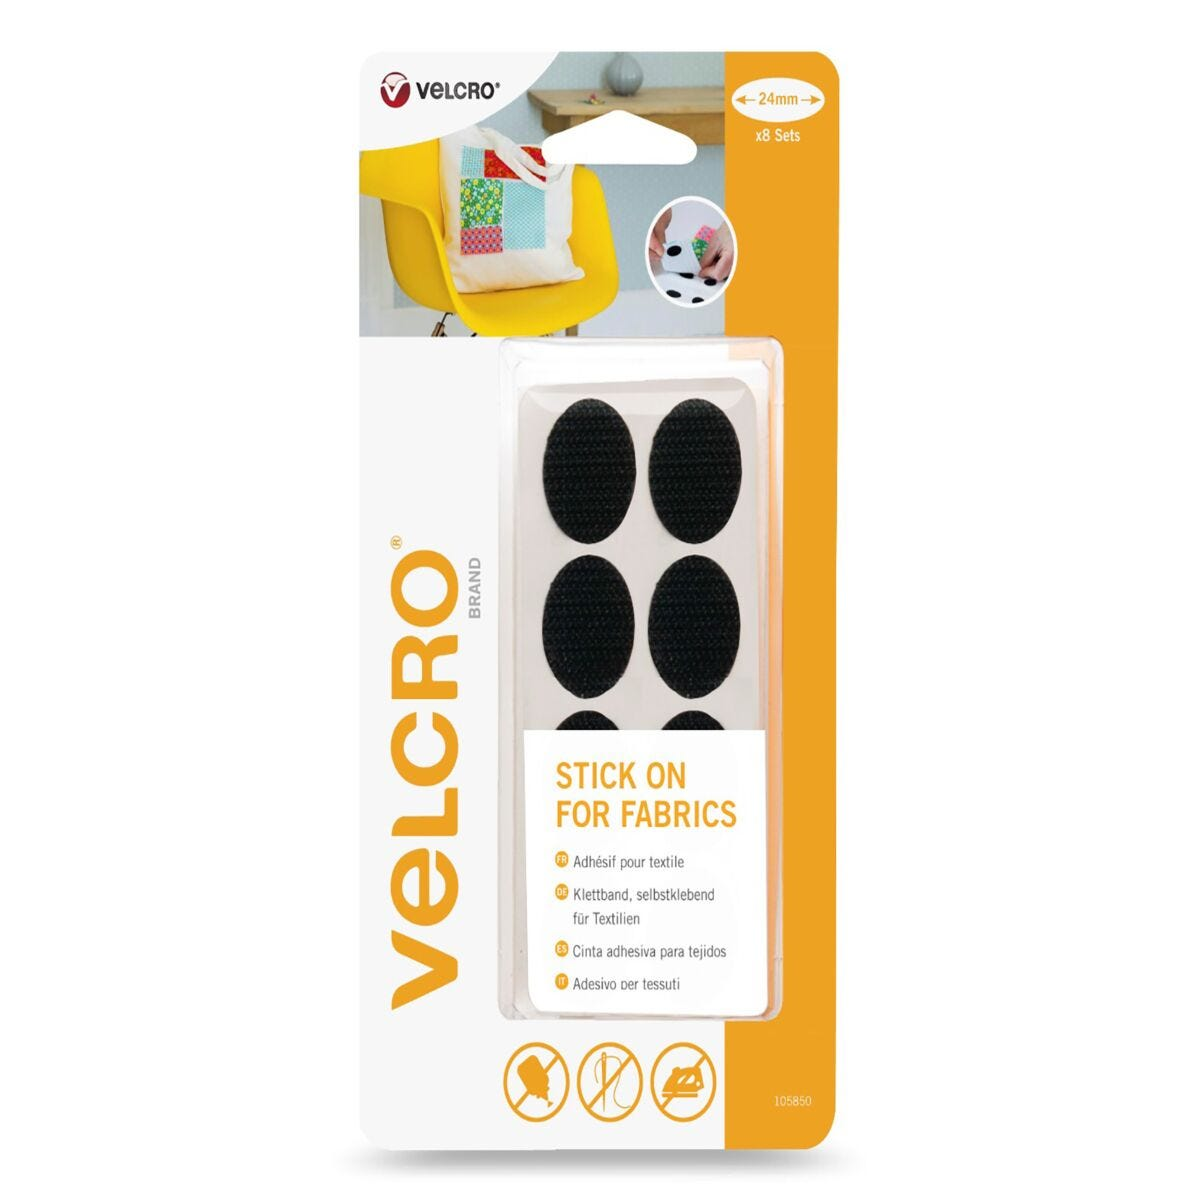 VELCRO Brand Oval Stick On For Fabric 24mm x 8 Sets Black